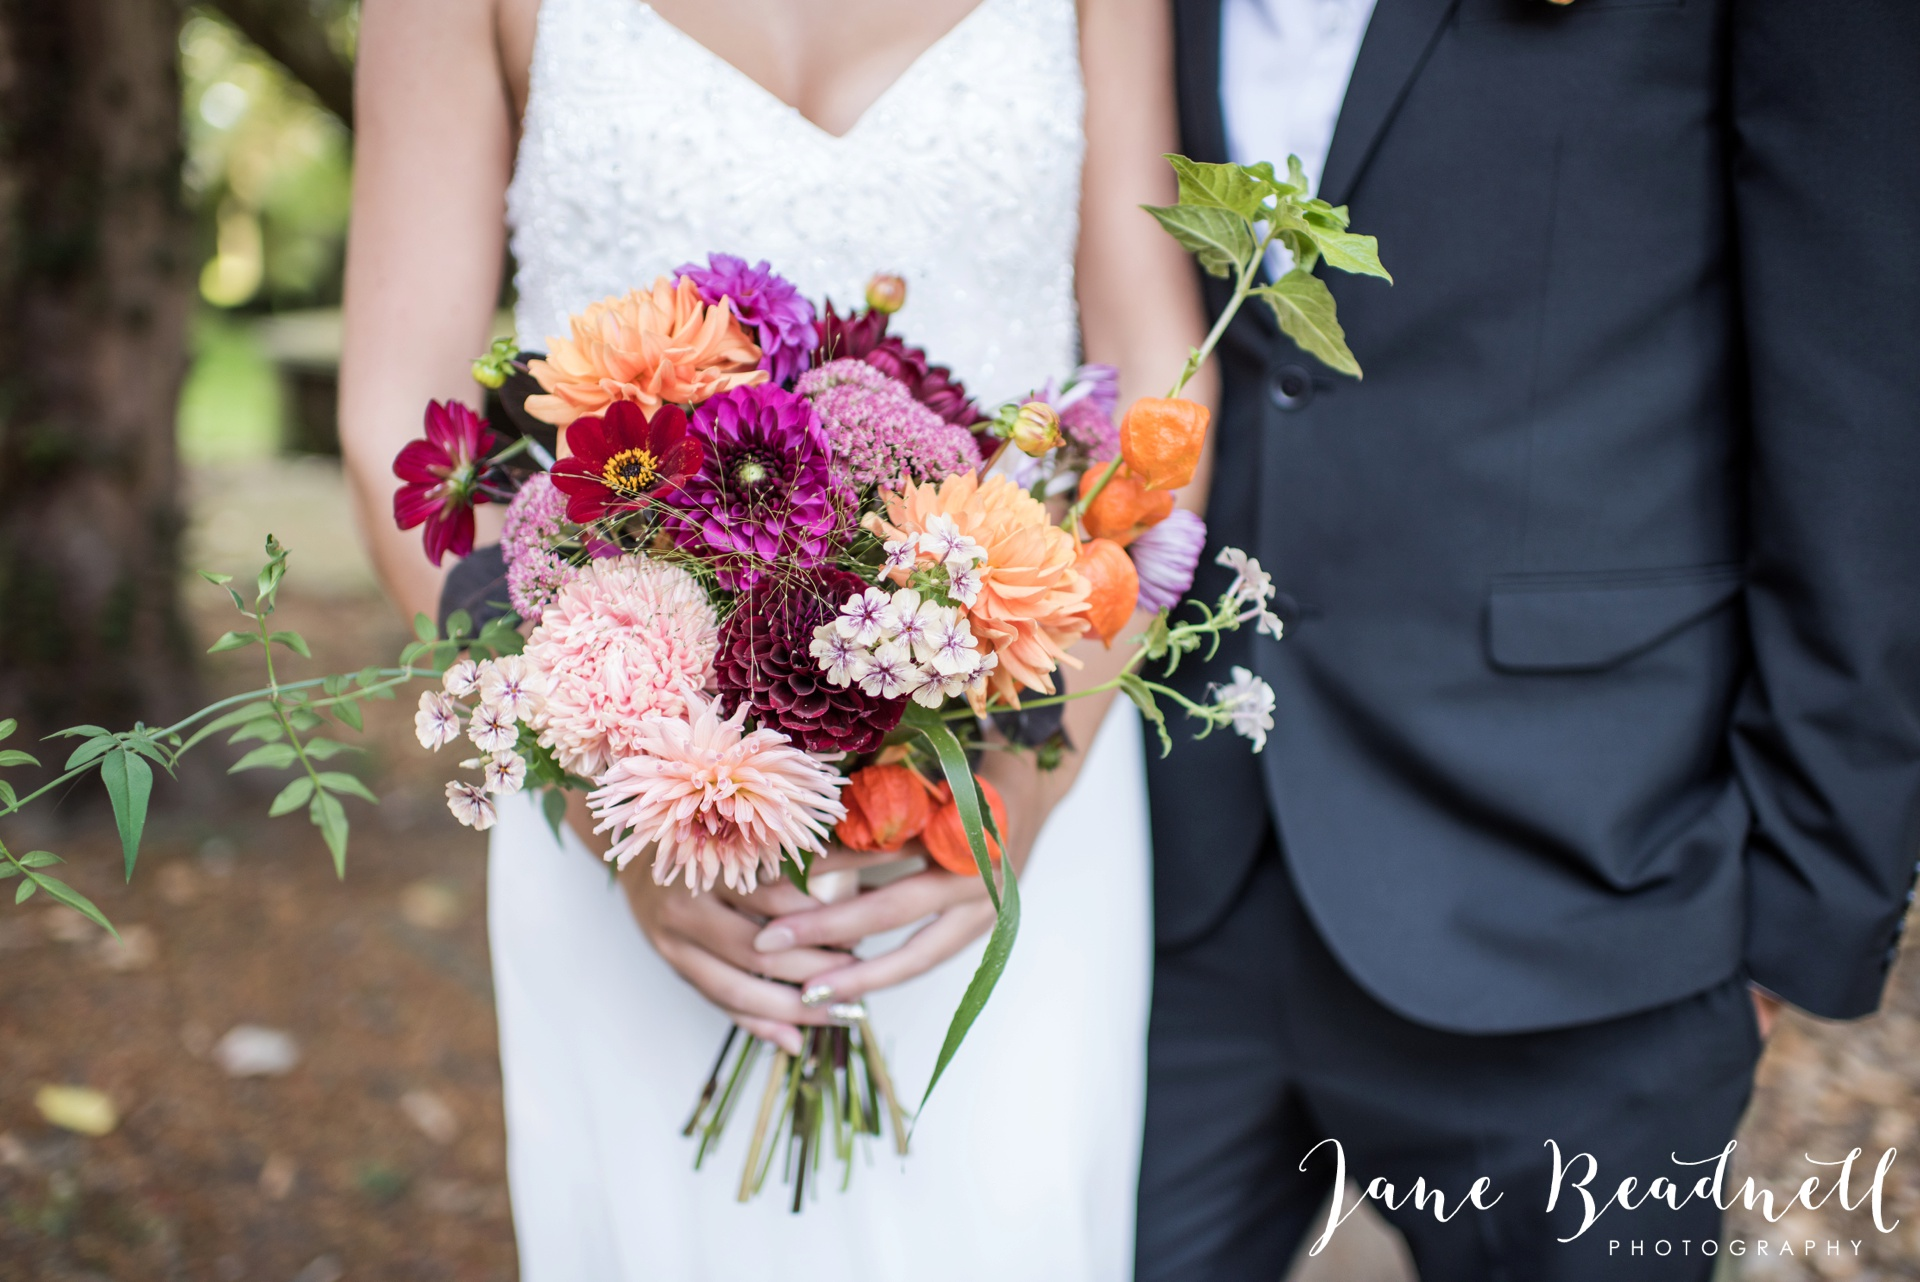 yorkshire-fine-art-wedding-photographer-jane-beadnell-photography-with-leafy-couture-wedding-flowers_0029